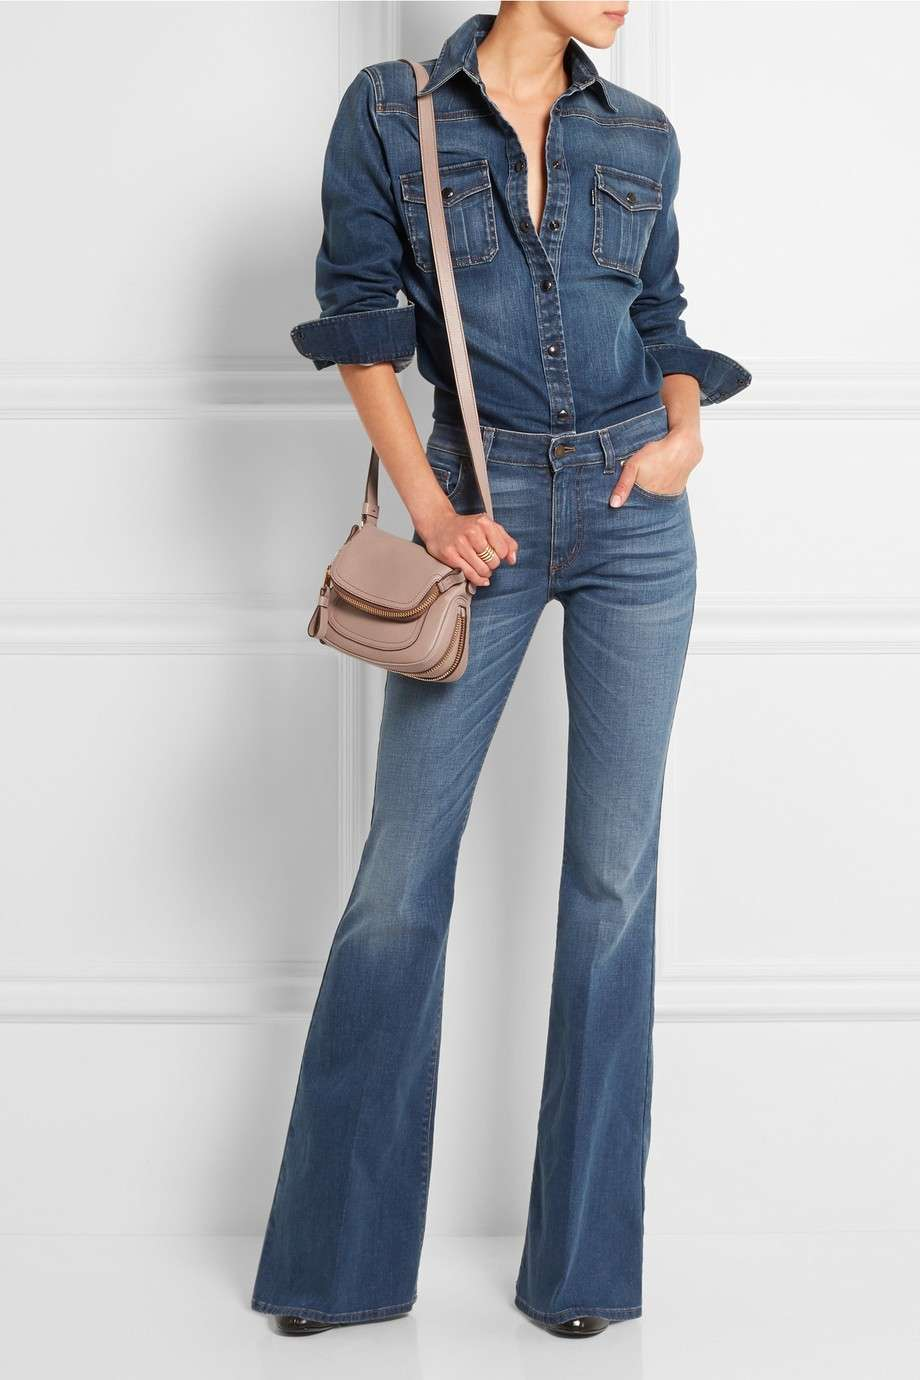 Look in total denim